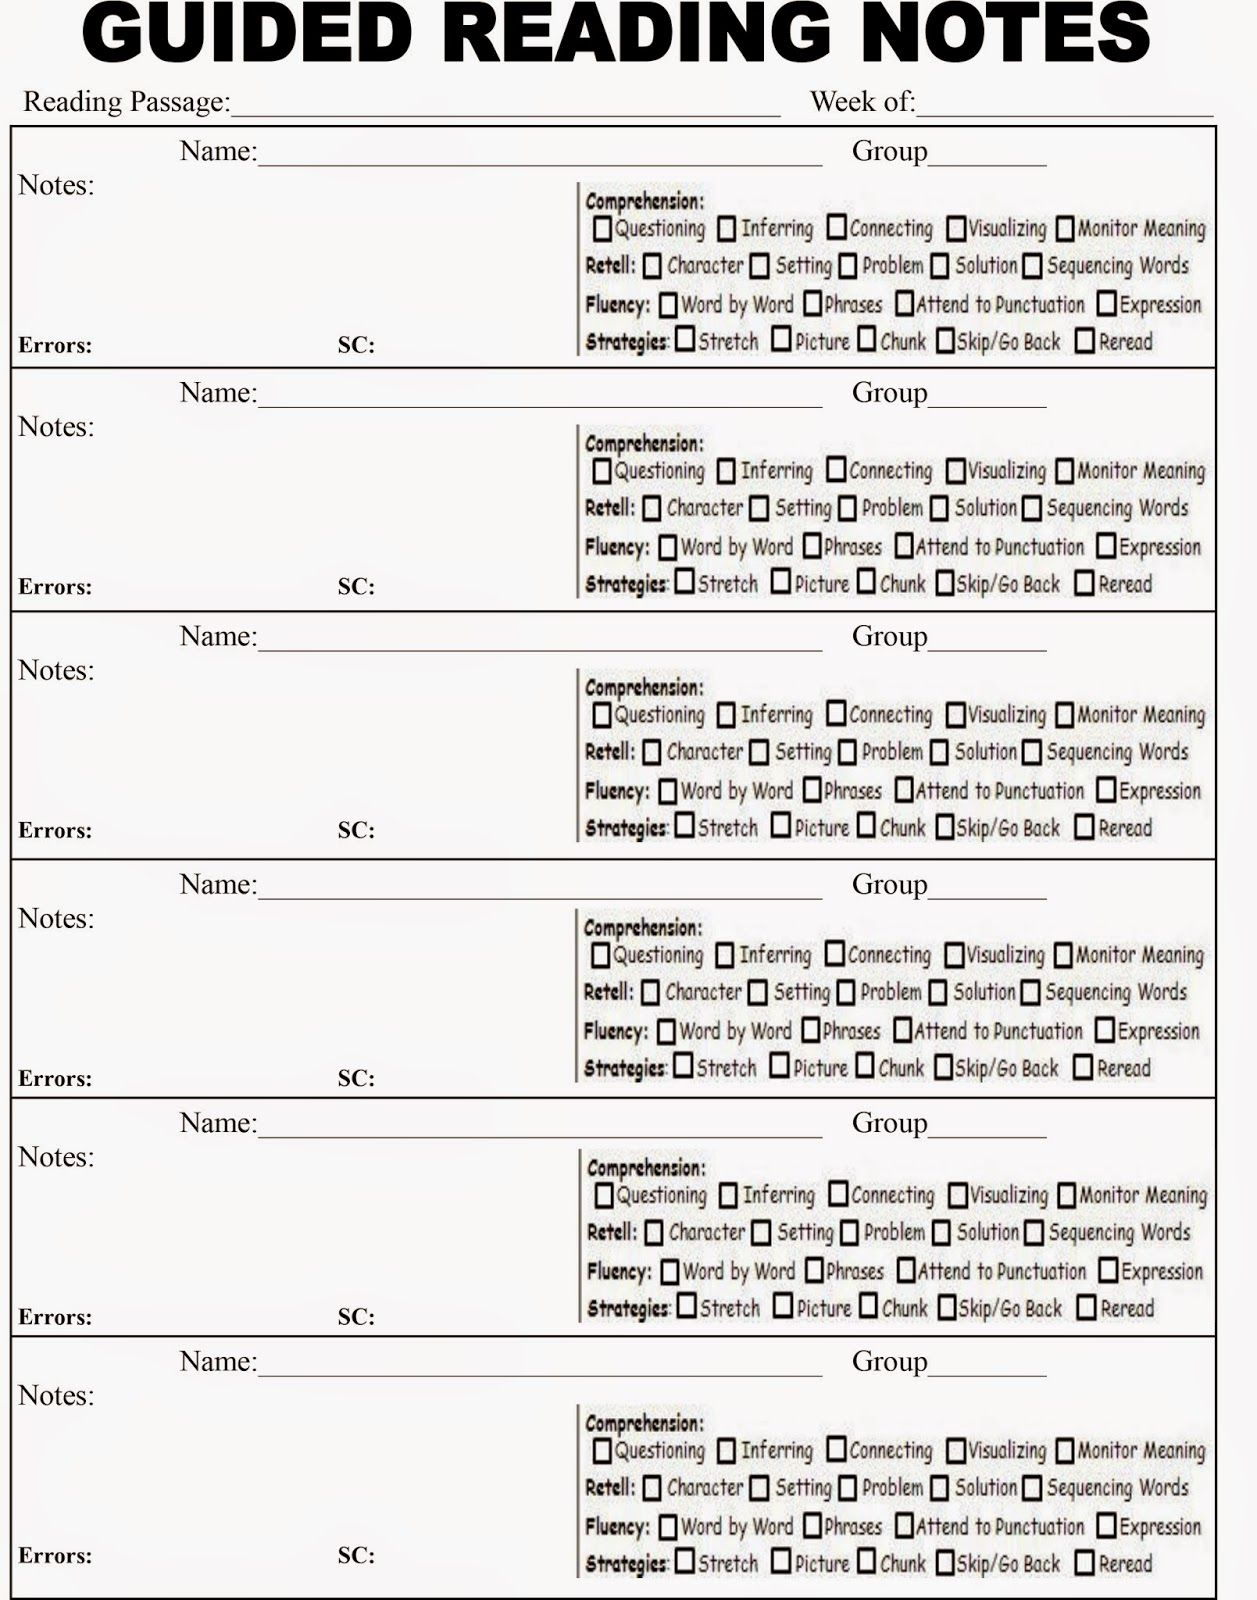 Guided Reading Note Template